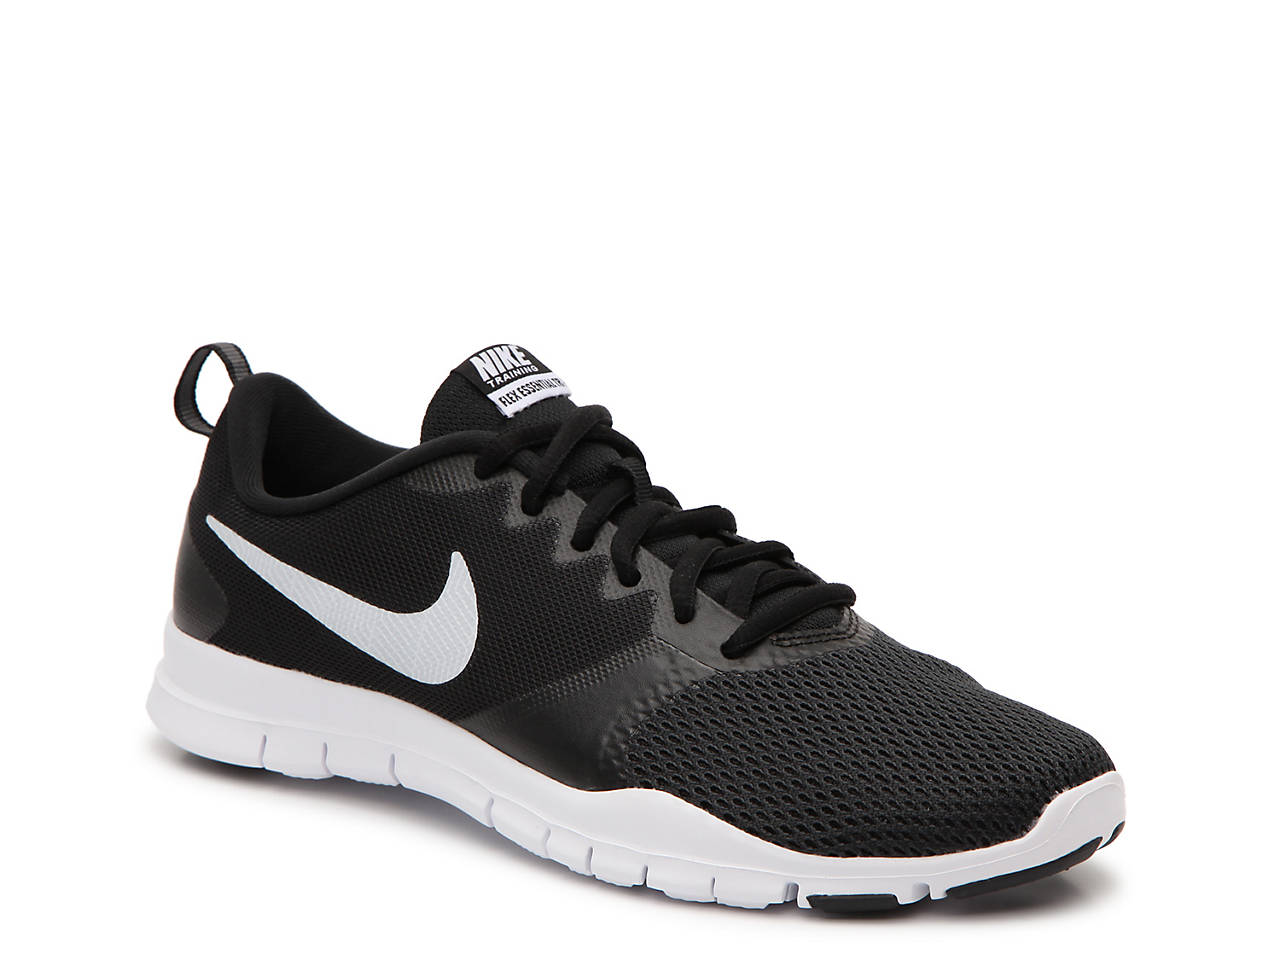 Nike Flex Essential Training Black Training Shoes 2014 unisex cheap online store with big discount cheap sale low cost wholesale price cheap price D9y4YzG